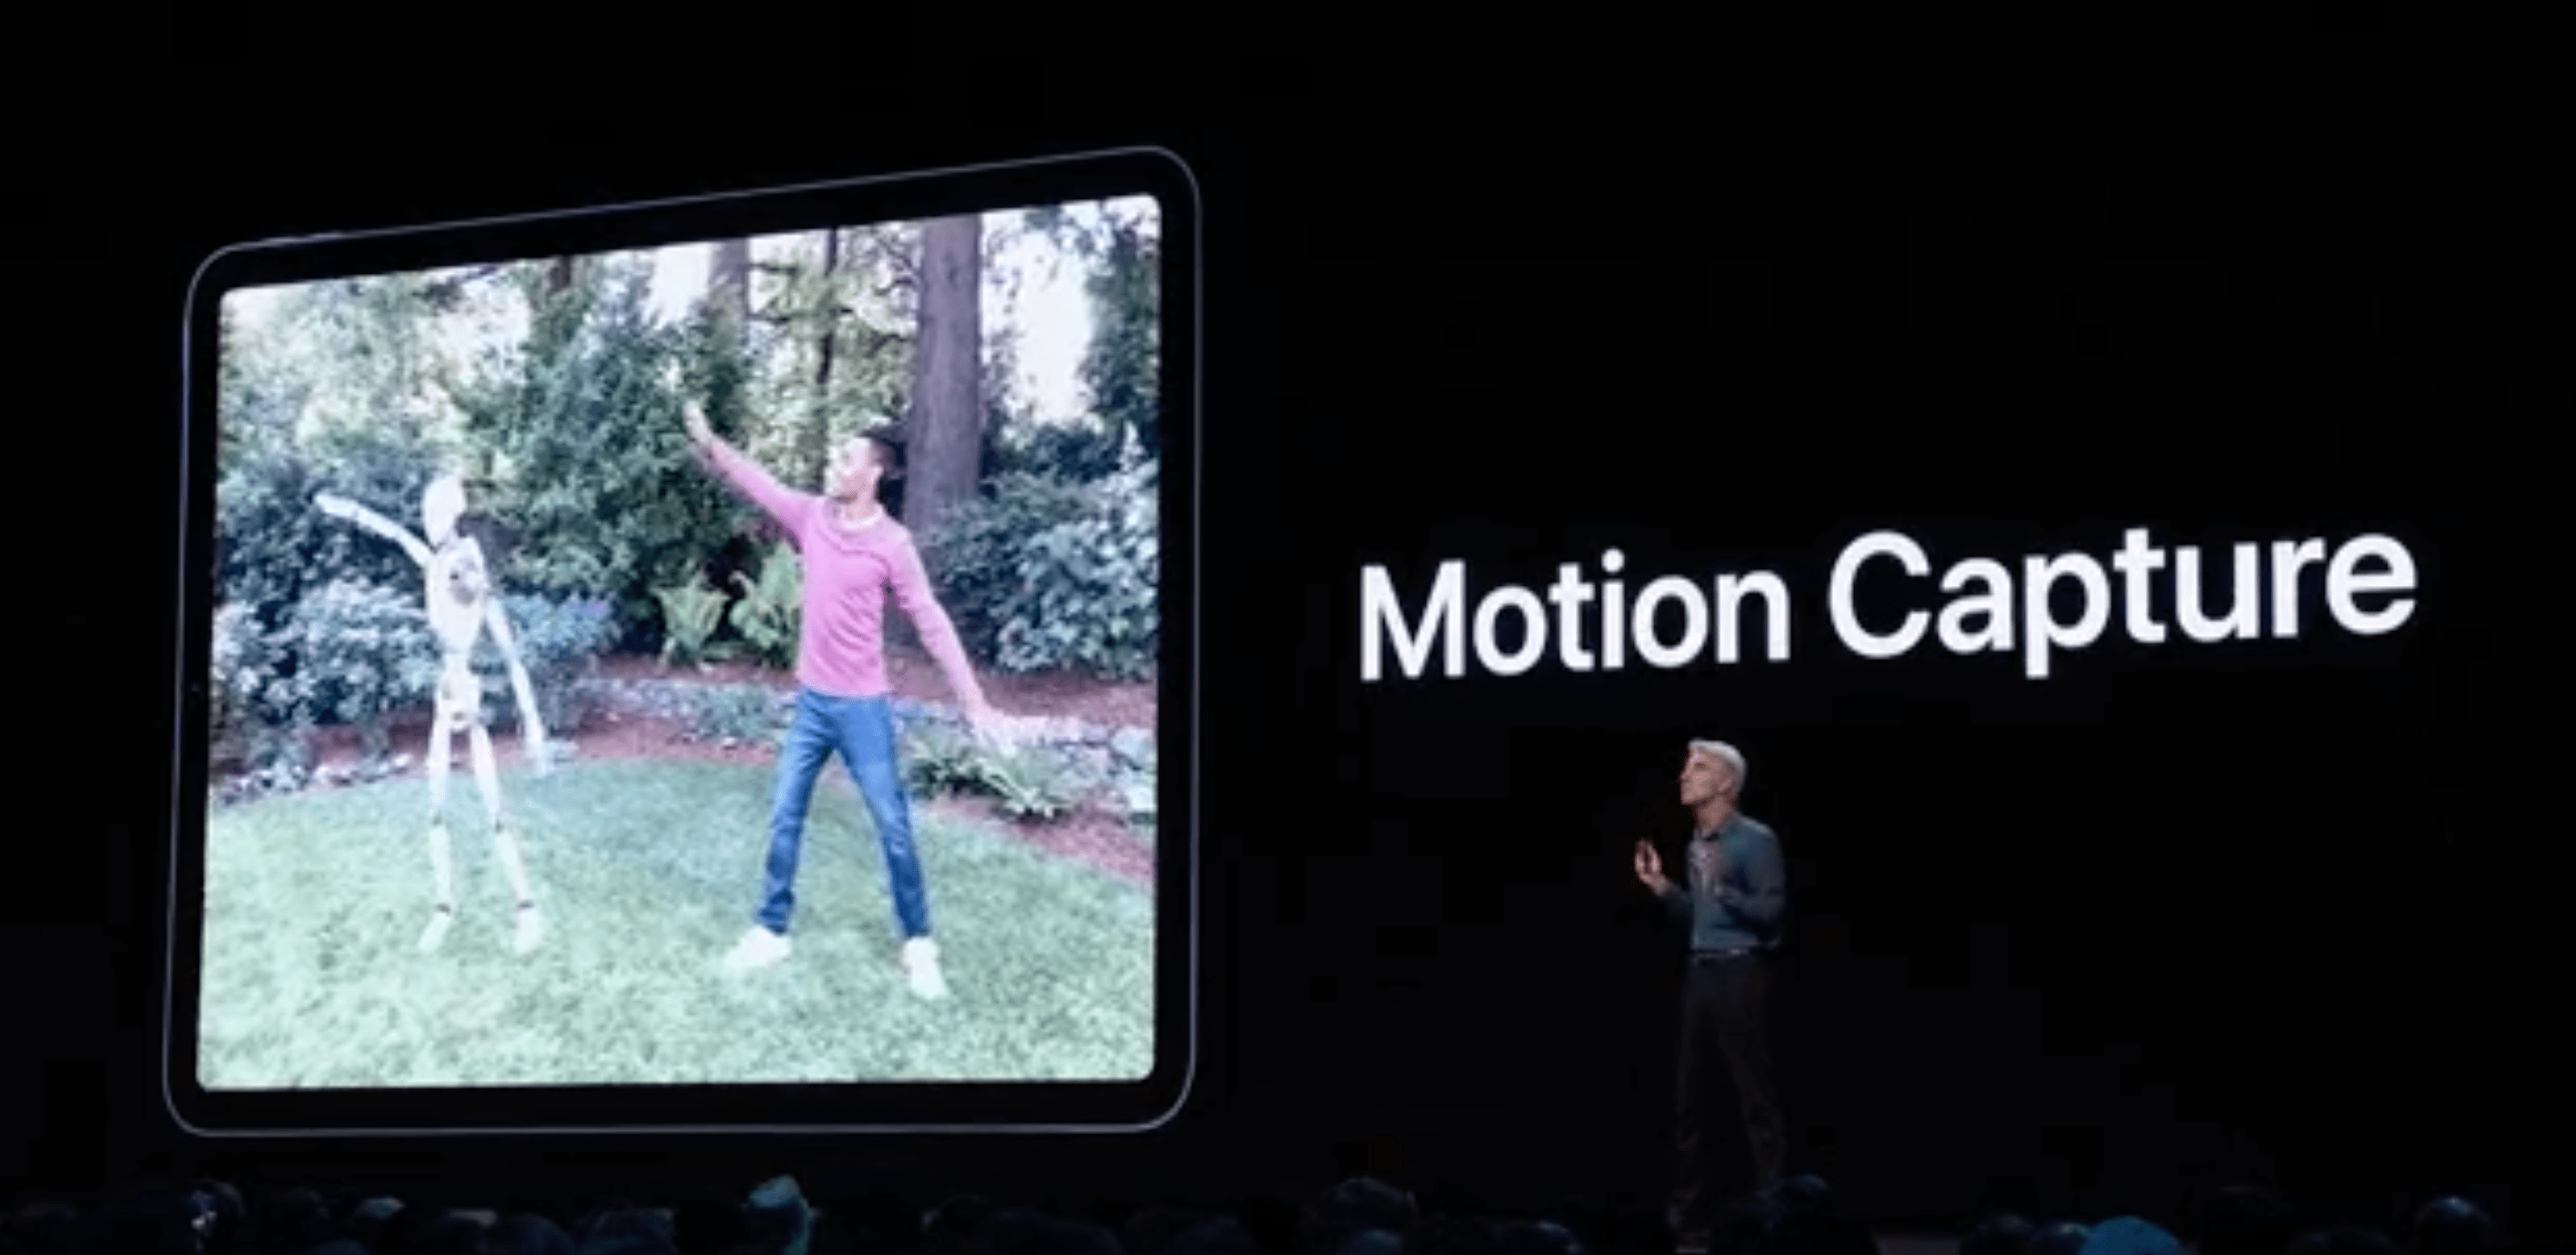 Captura de movimiento en iOs 13